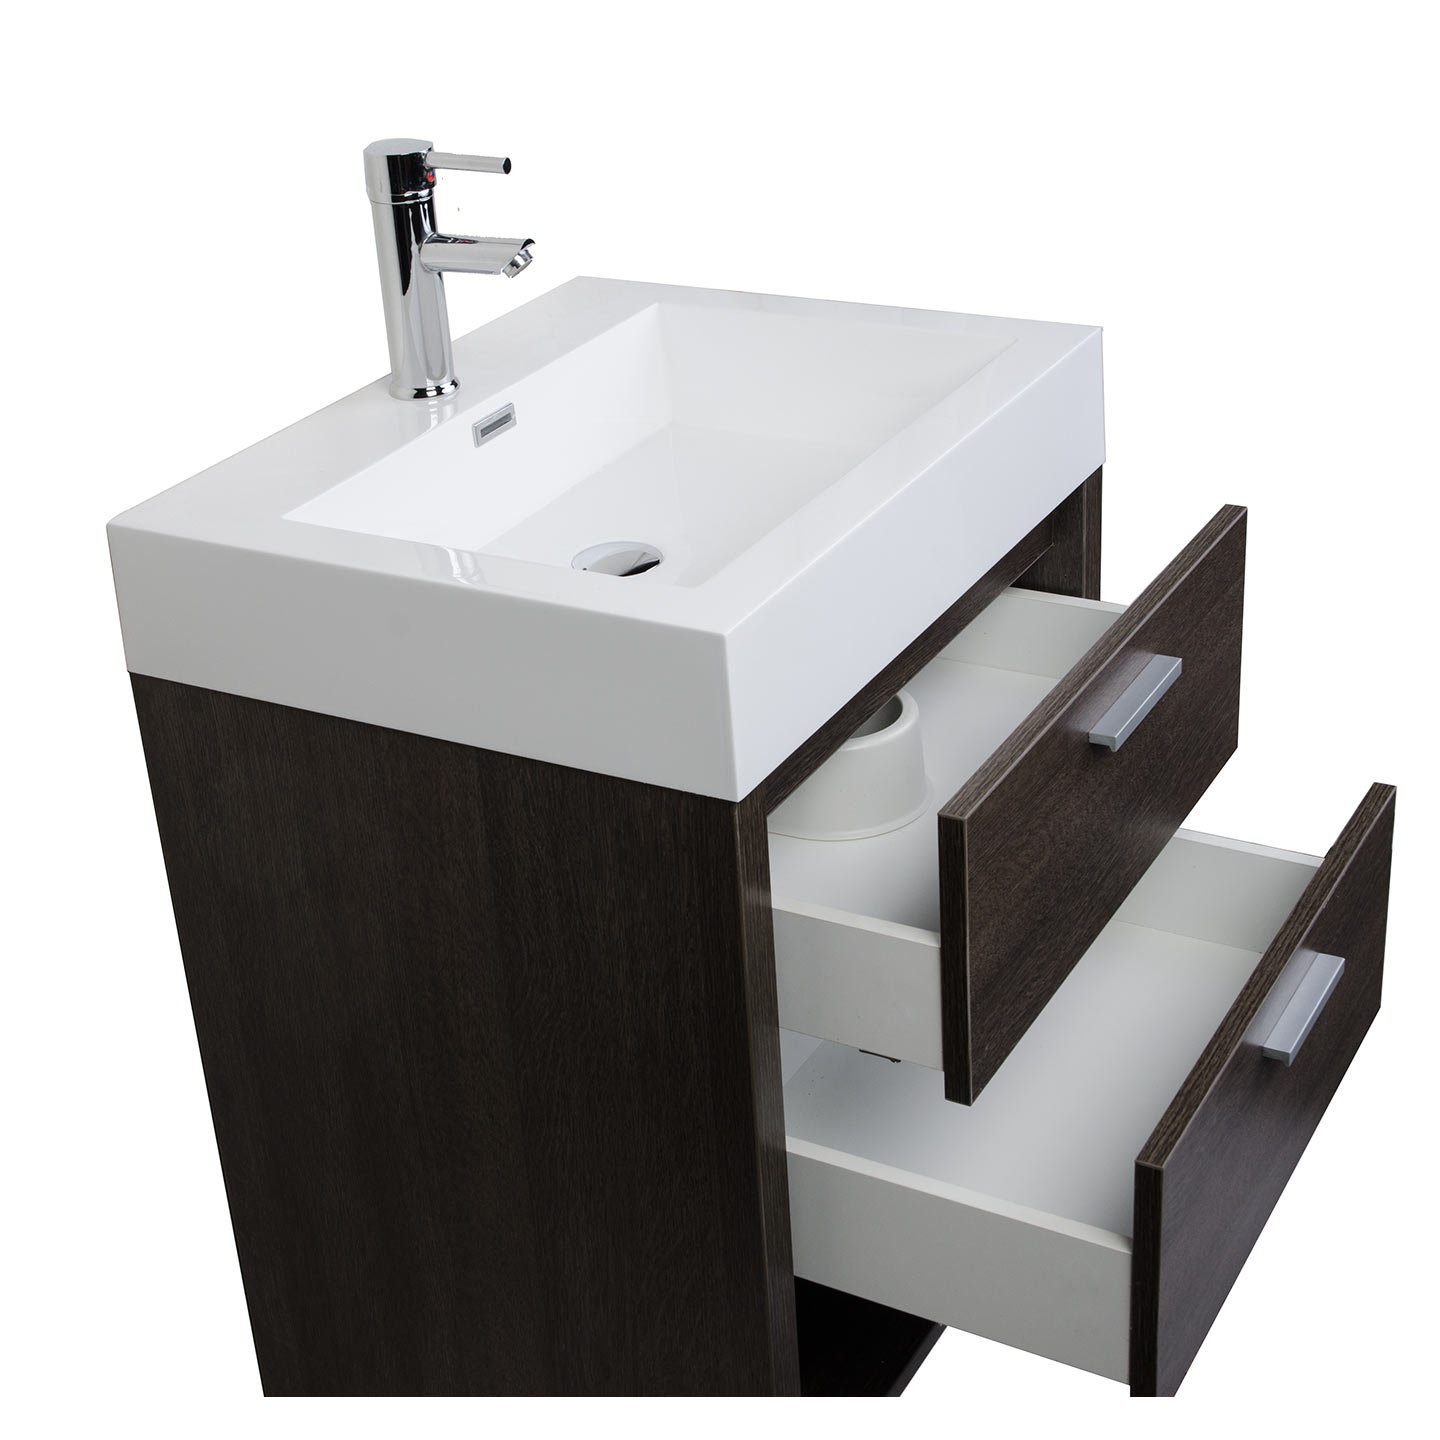 Bathroom vanity san francisco - 36 Bathroom Vanity San Francisco Rs L900 Oak